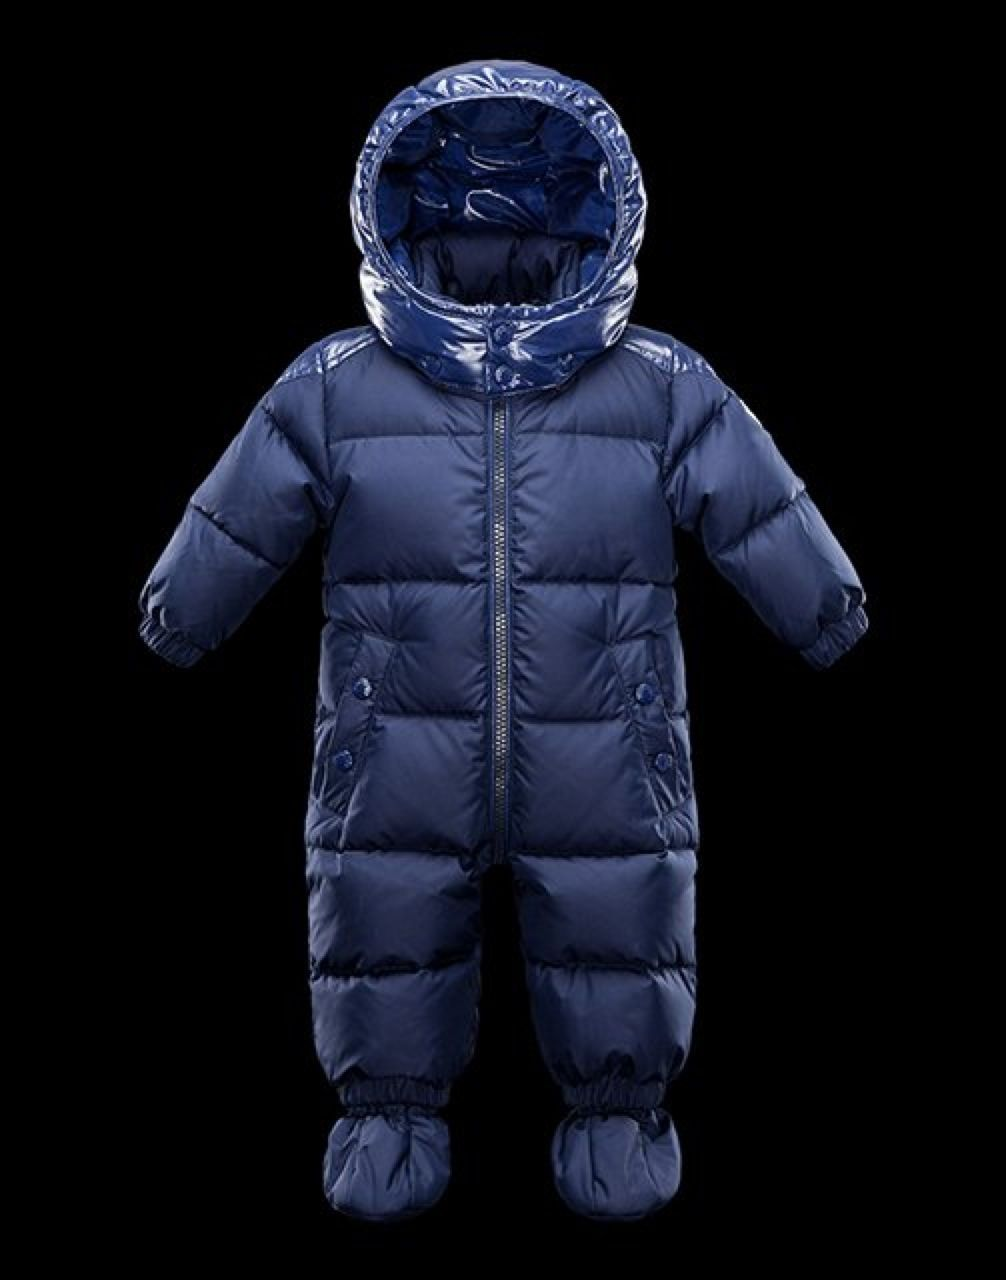 Infant Poney Snow Suit by Moncler. Clothing Kids Children Suit Winter Snow Fashion Couture Product